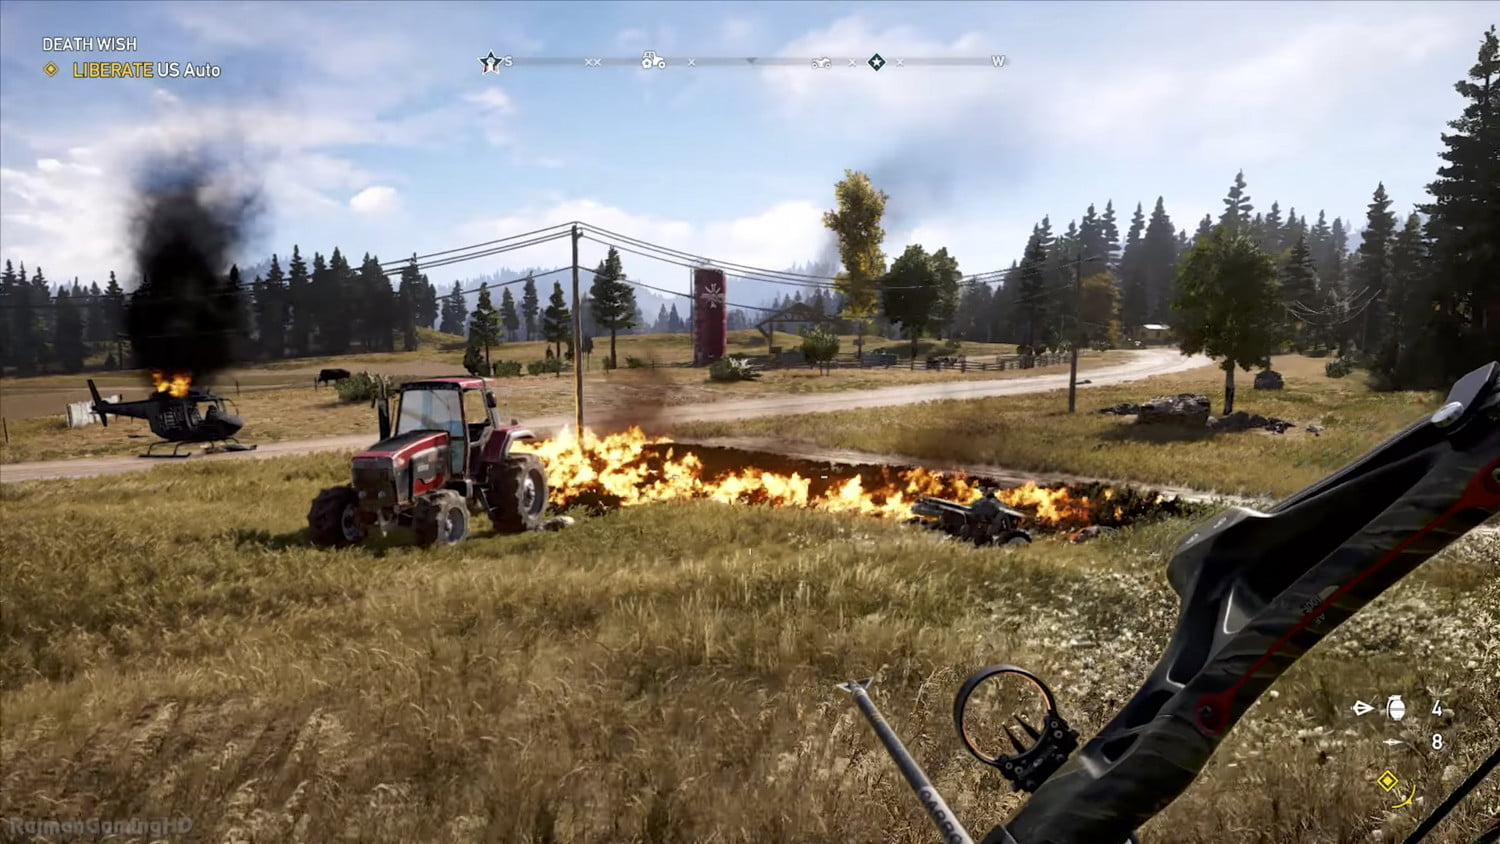 Far Cry 5' Review: Politics, a Suicide Mission, and